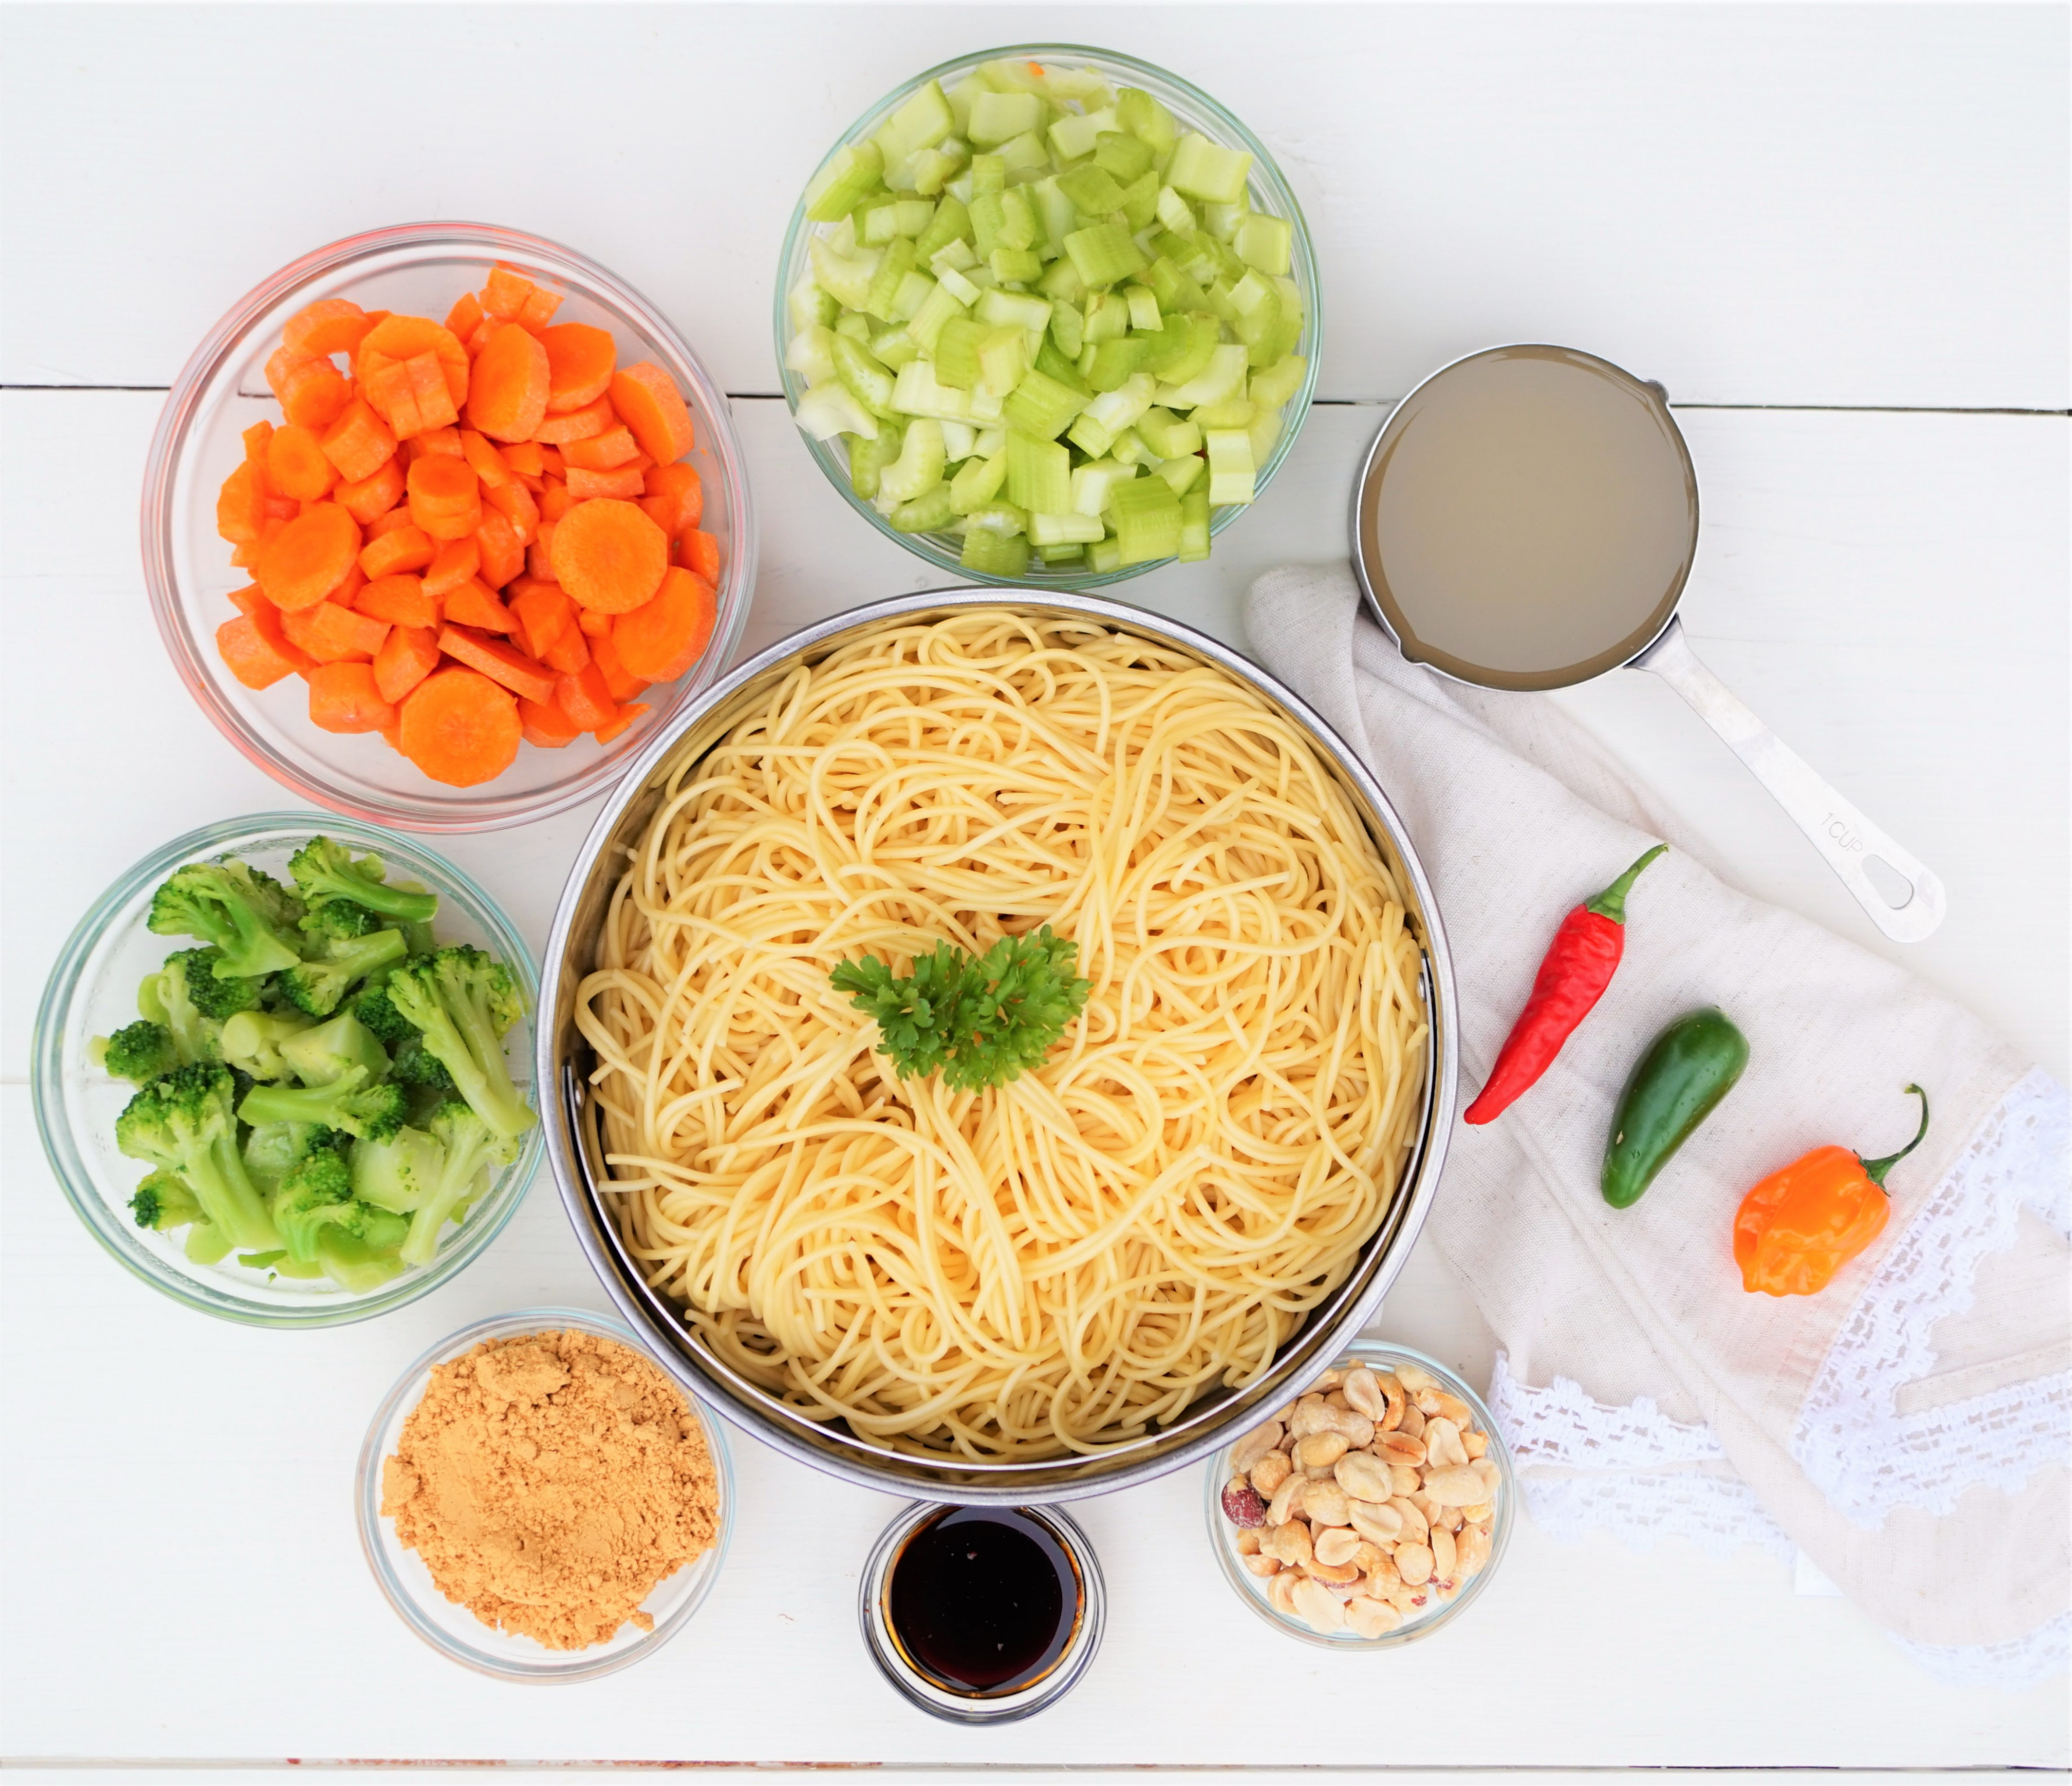 Vegetable Spaghetti Stir Fry with Spicy Peanut Sauce